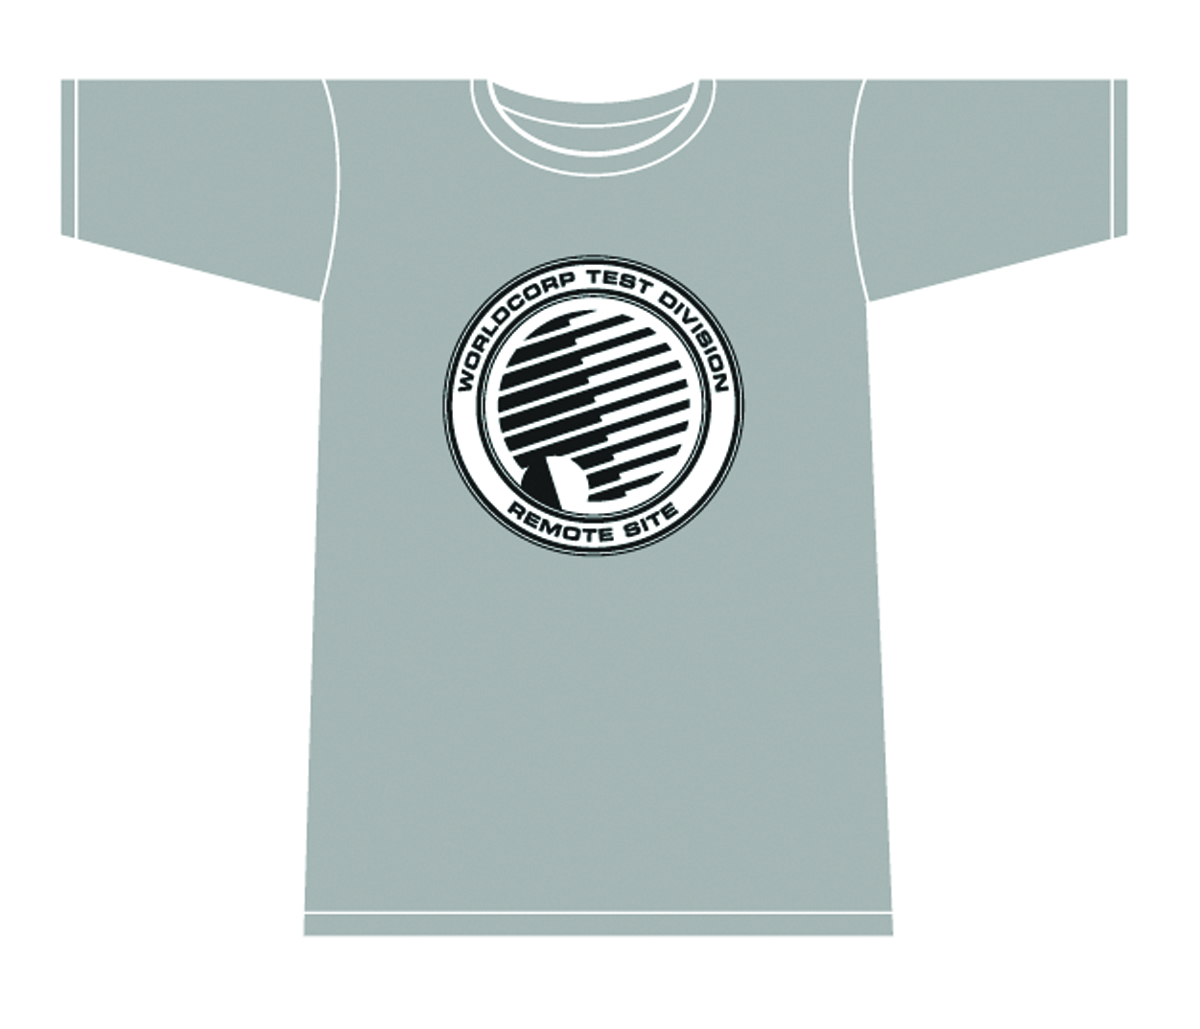 NOWHERE MEN WORLD CORP TEST DIVISION T/S GREY WOMENS SM